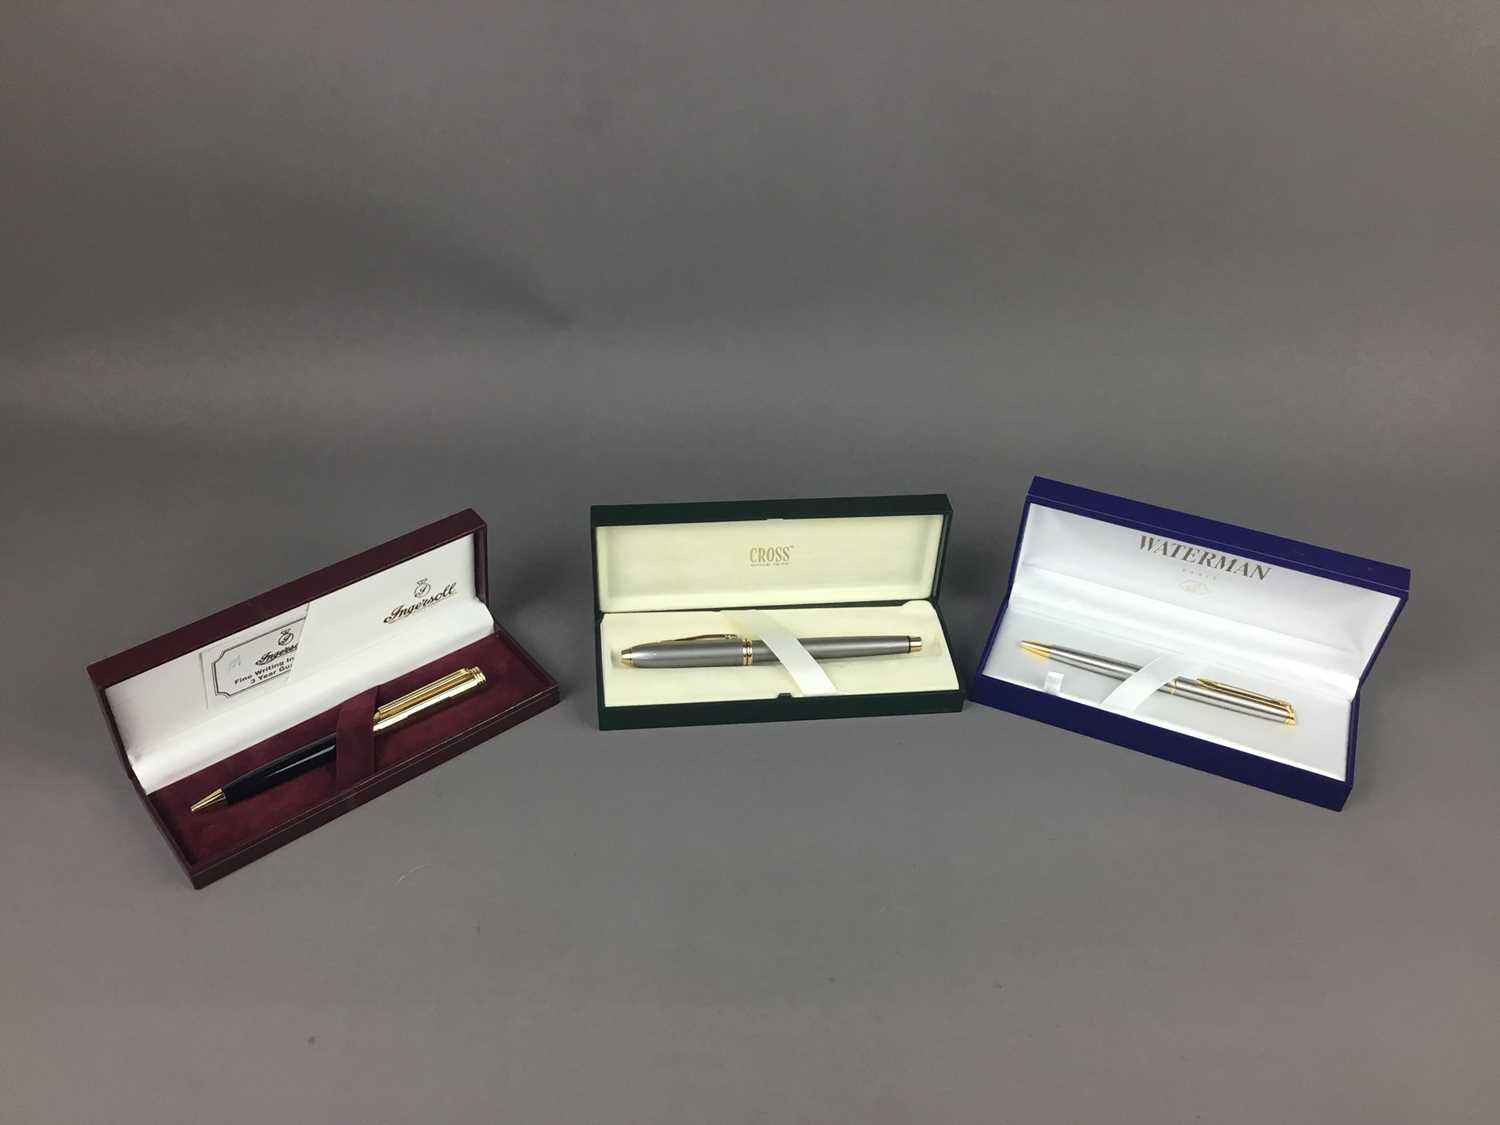 Lot 539 - A CROSS FOUNTAIN PEN AND TWO OTHERS